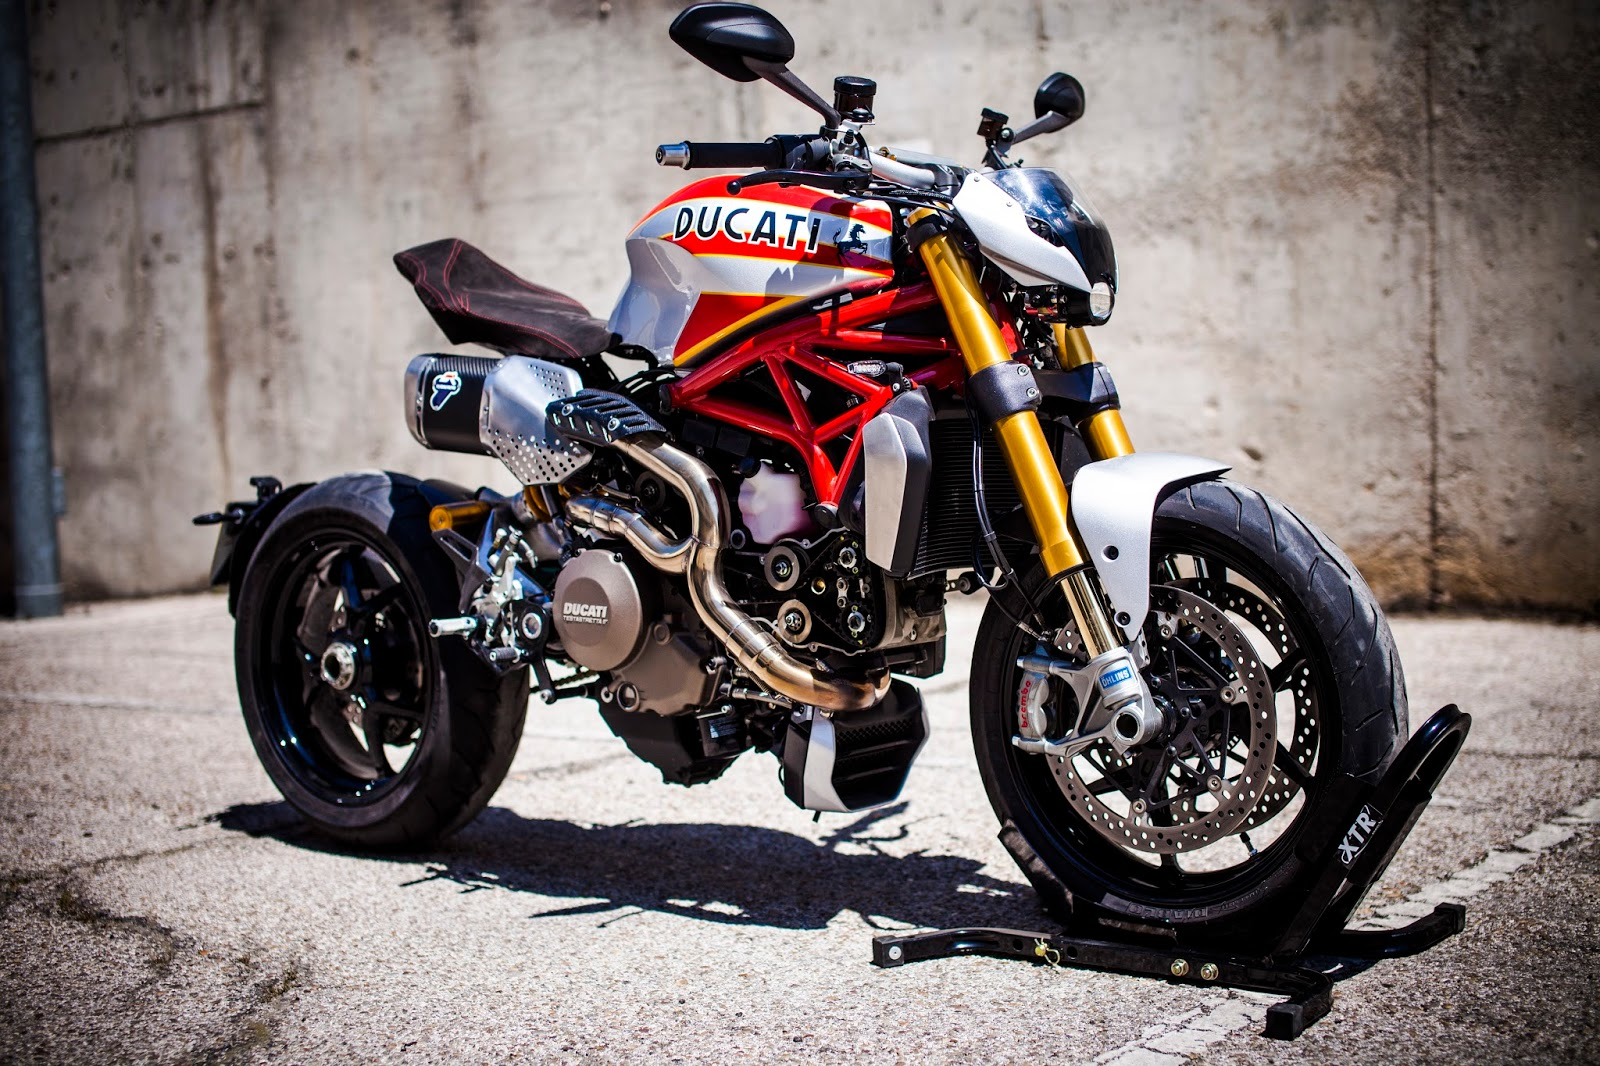 racing caf ducati monster 1200 s siluro by xtr pepo. Black Bedroom Furniture Sets. Home Design Ideas